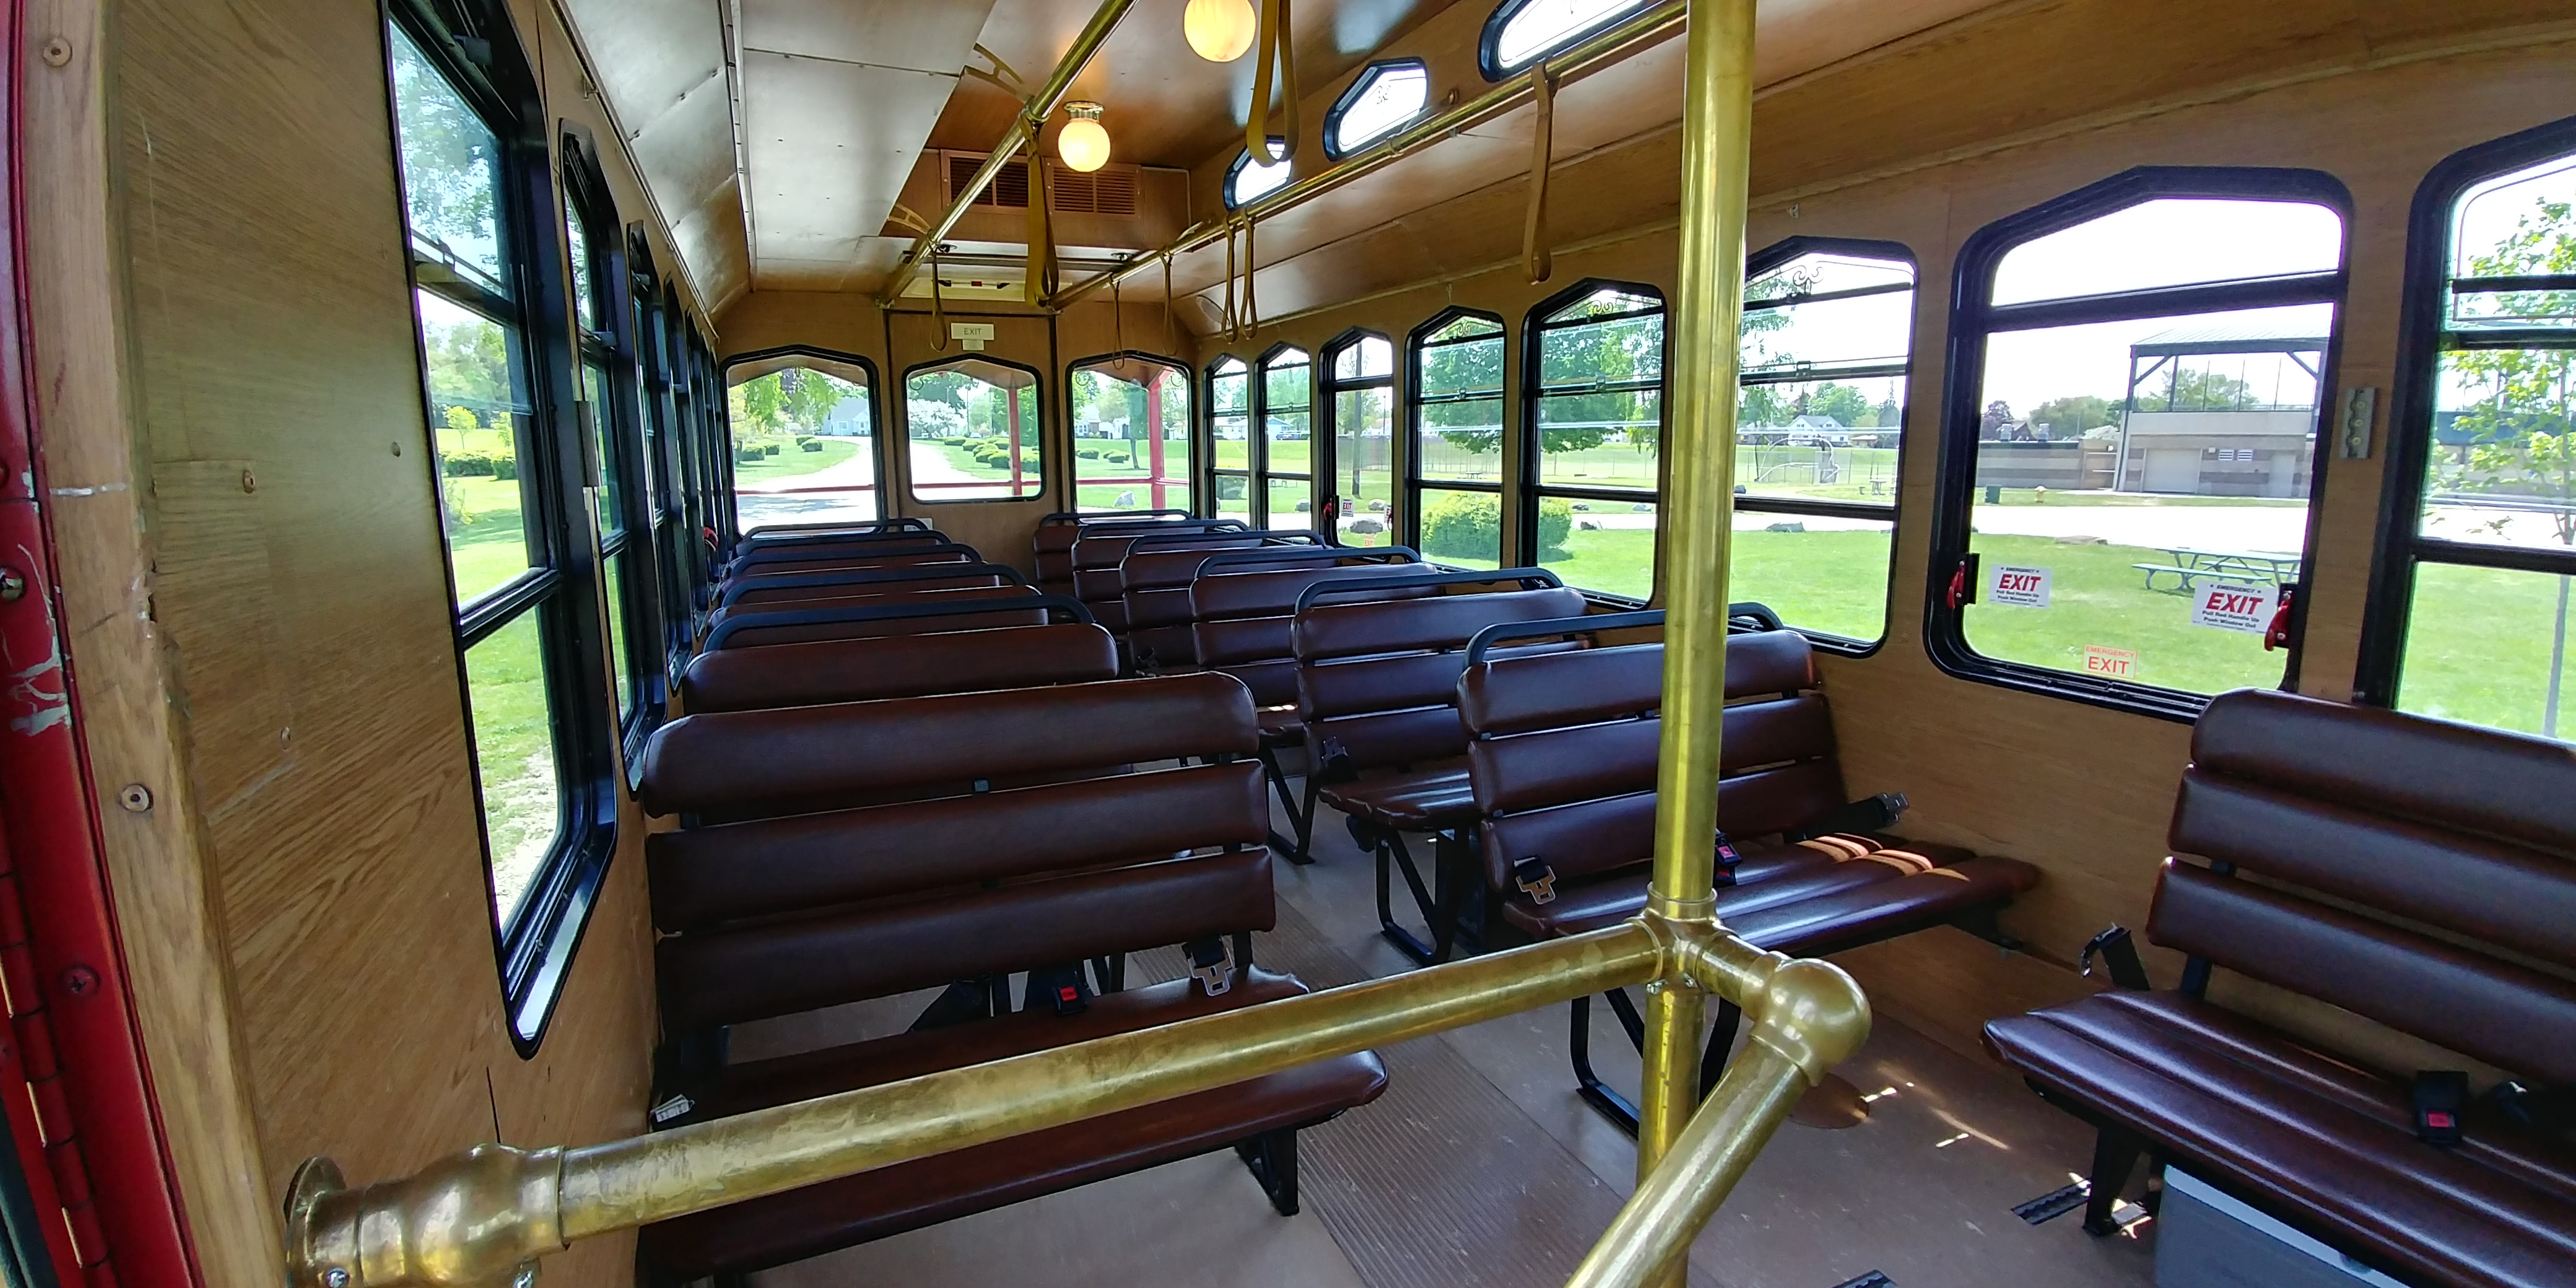 27 Passenger Trolley Interior 2